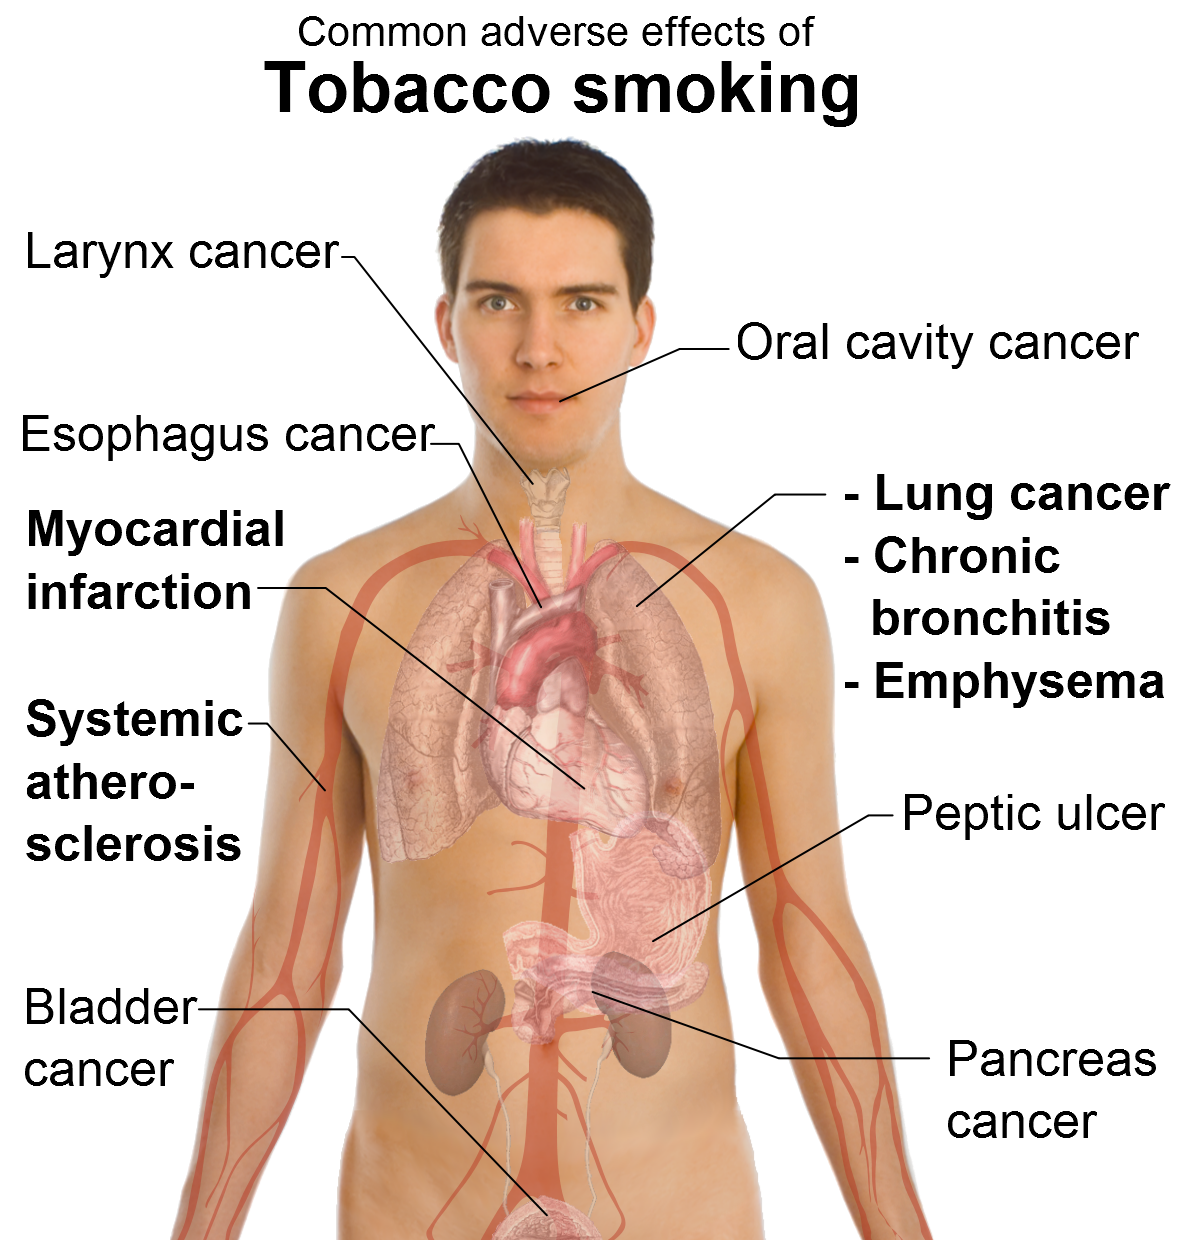 the human body and the health effects of marijuana